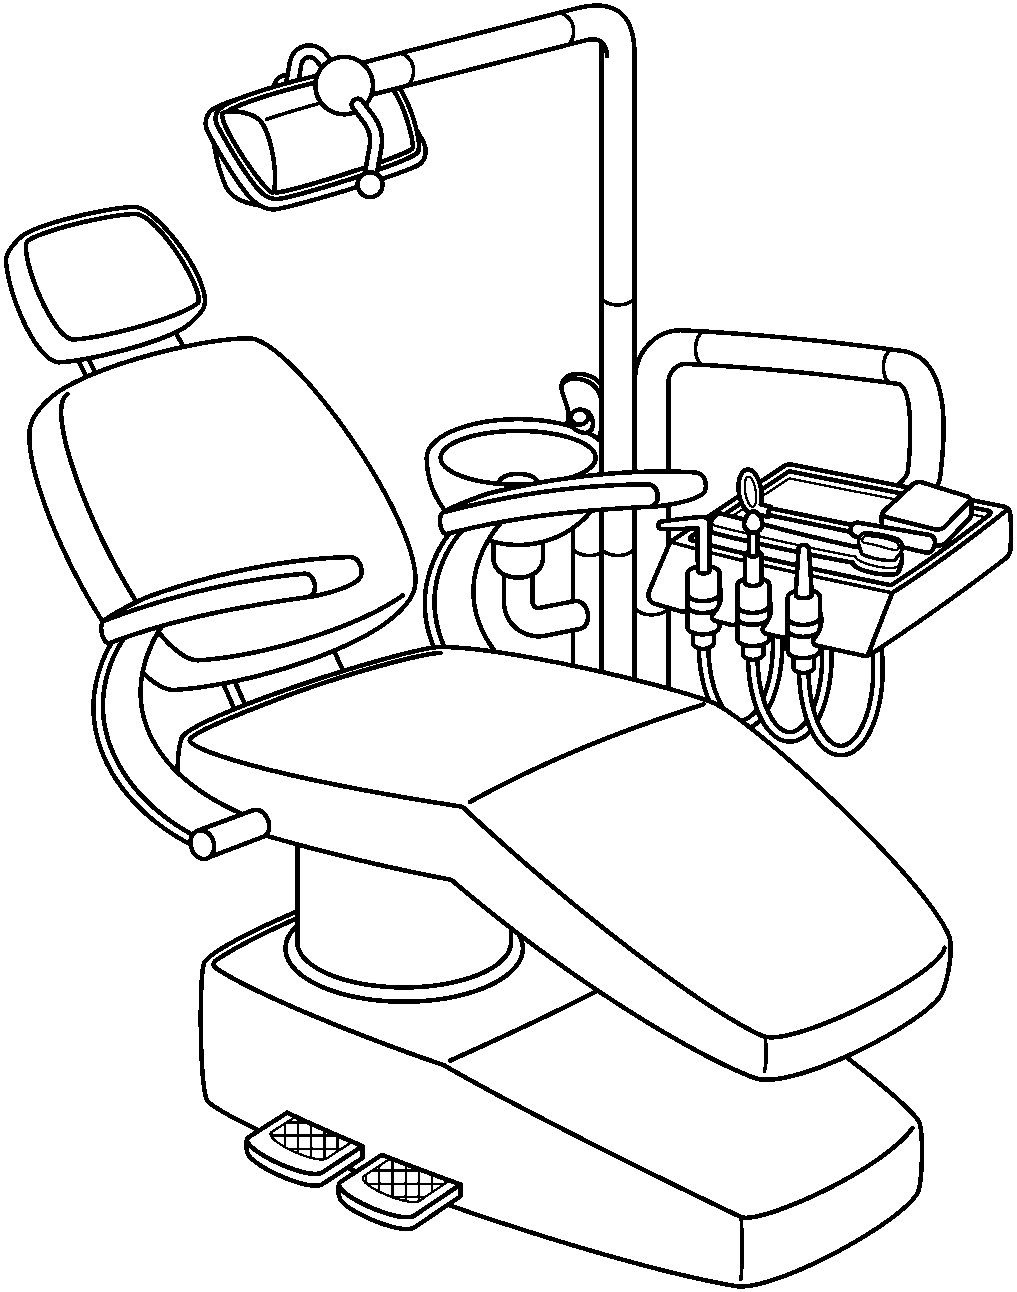 Dentist Tool Clipart Yahoo Image Search Results Dentist Cake